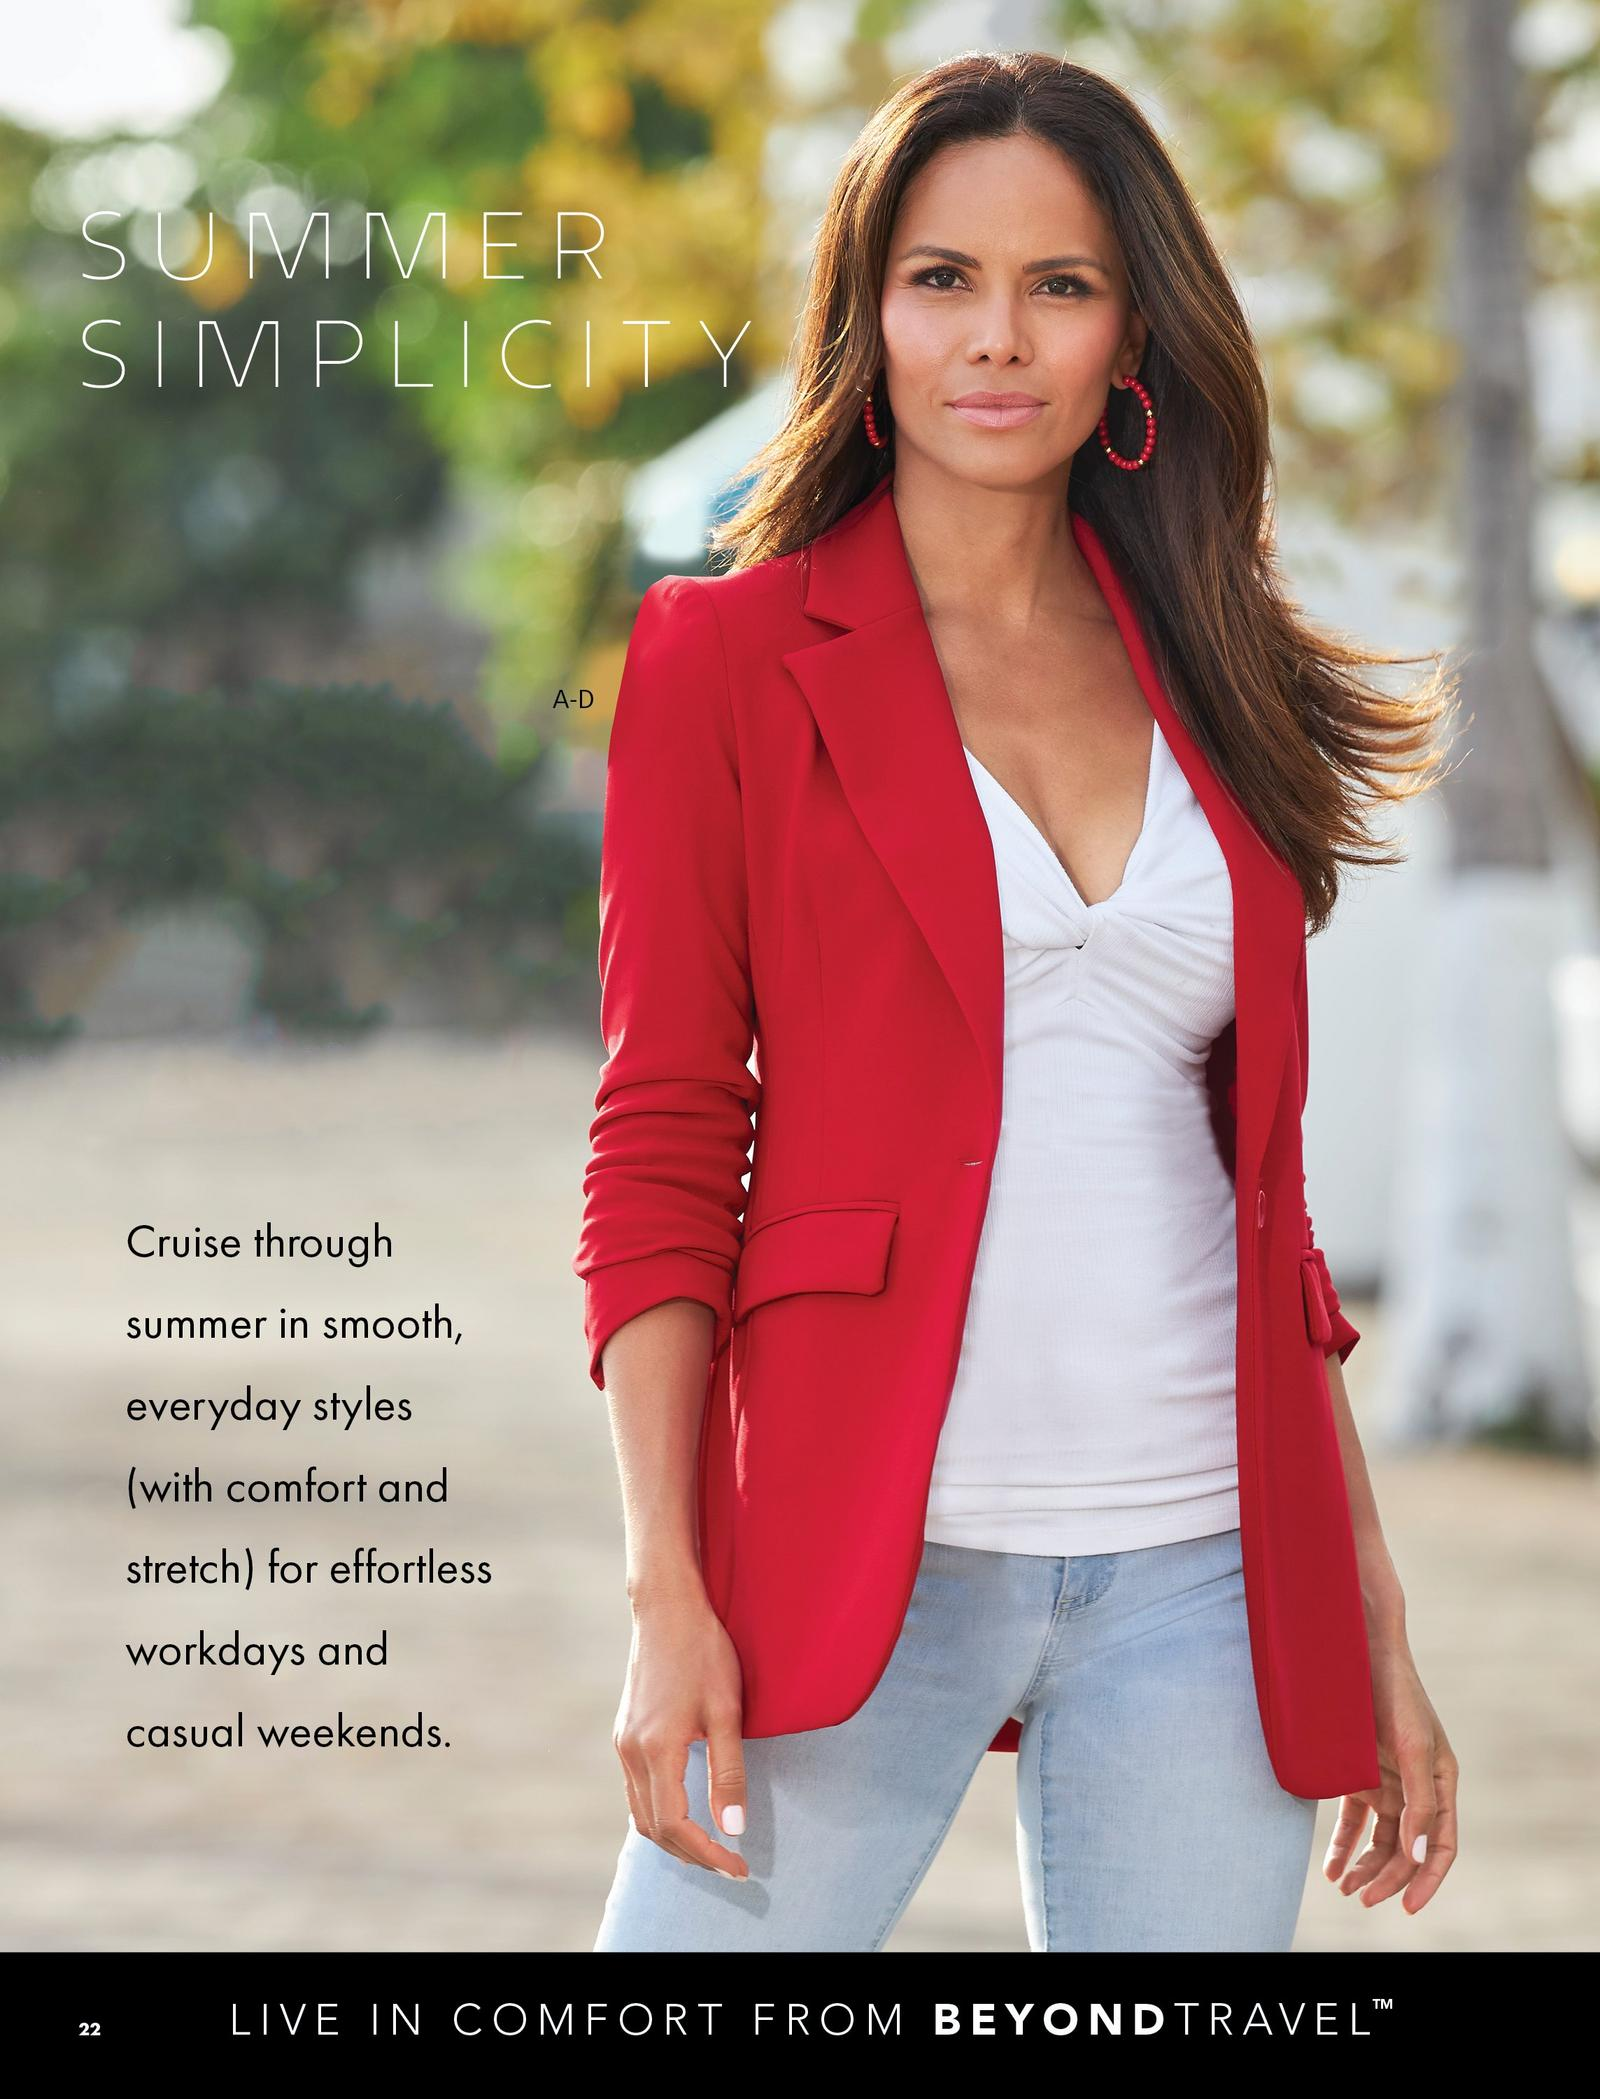 model wearing a red blazer, white ribbed twist-front top, red hoop earrings, and light wash jeans.